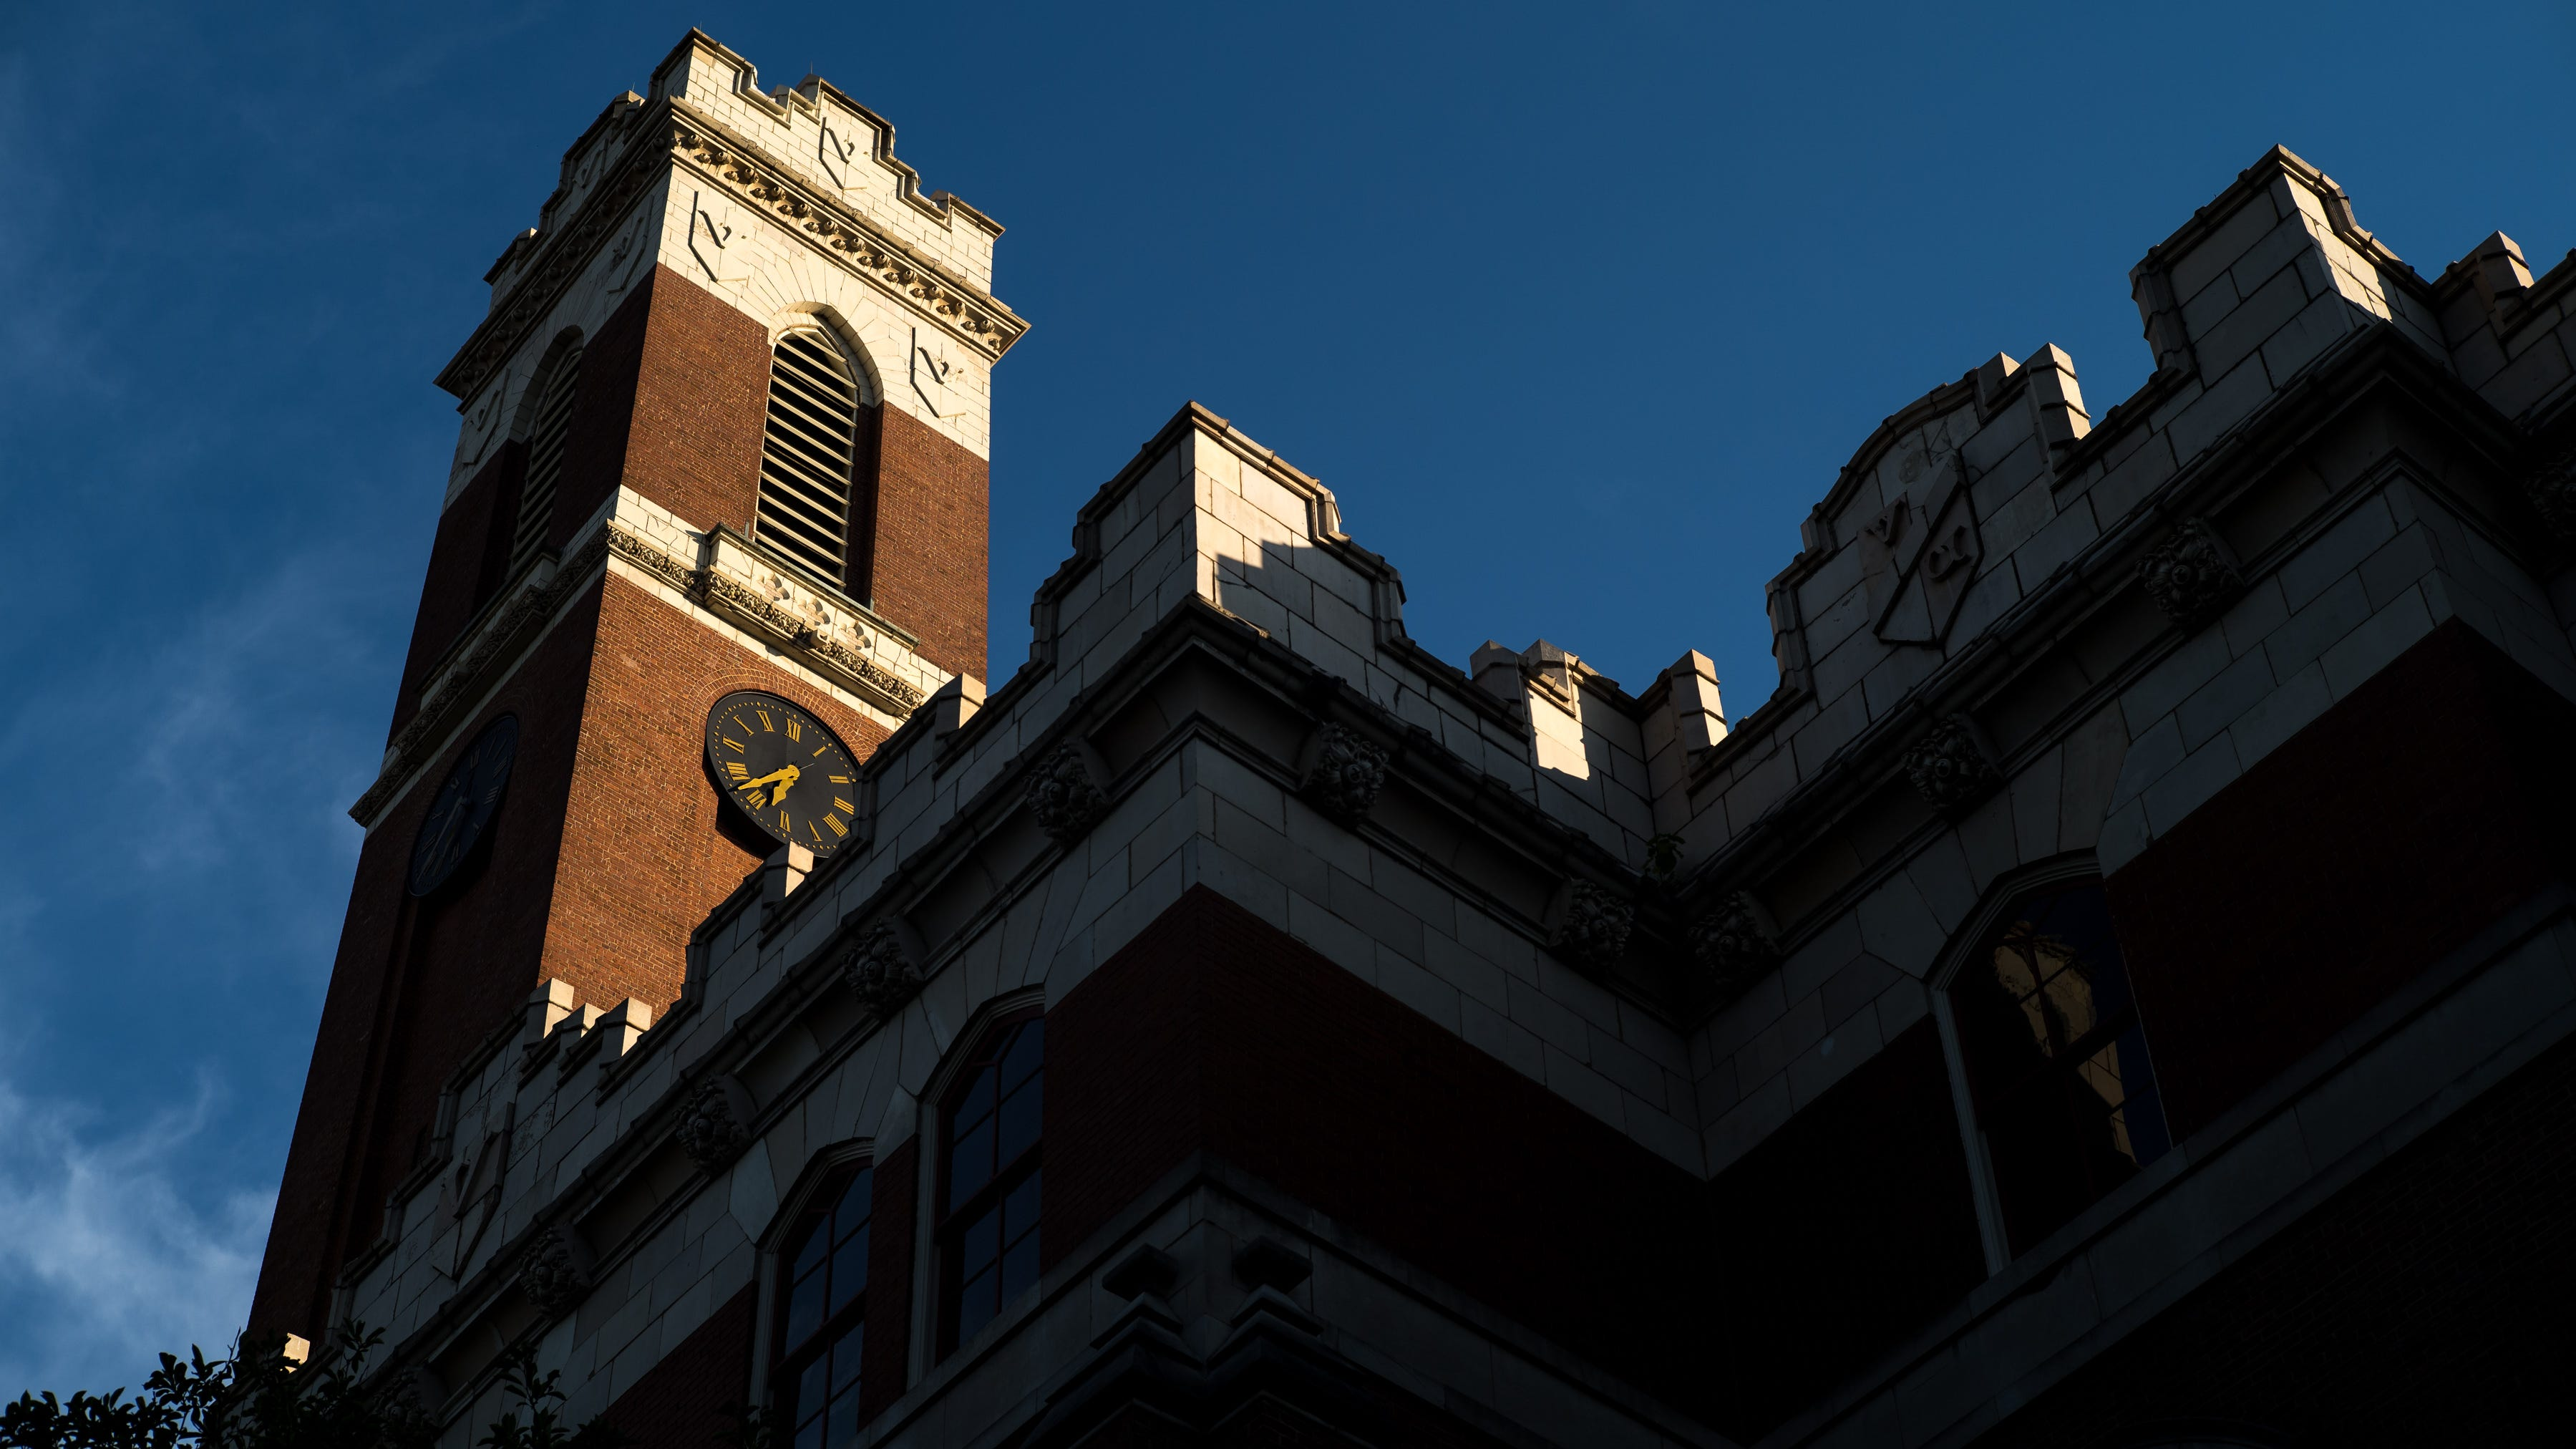 Faced with high-profile sexual assault cases, Vanderbilt and UT forced to act